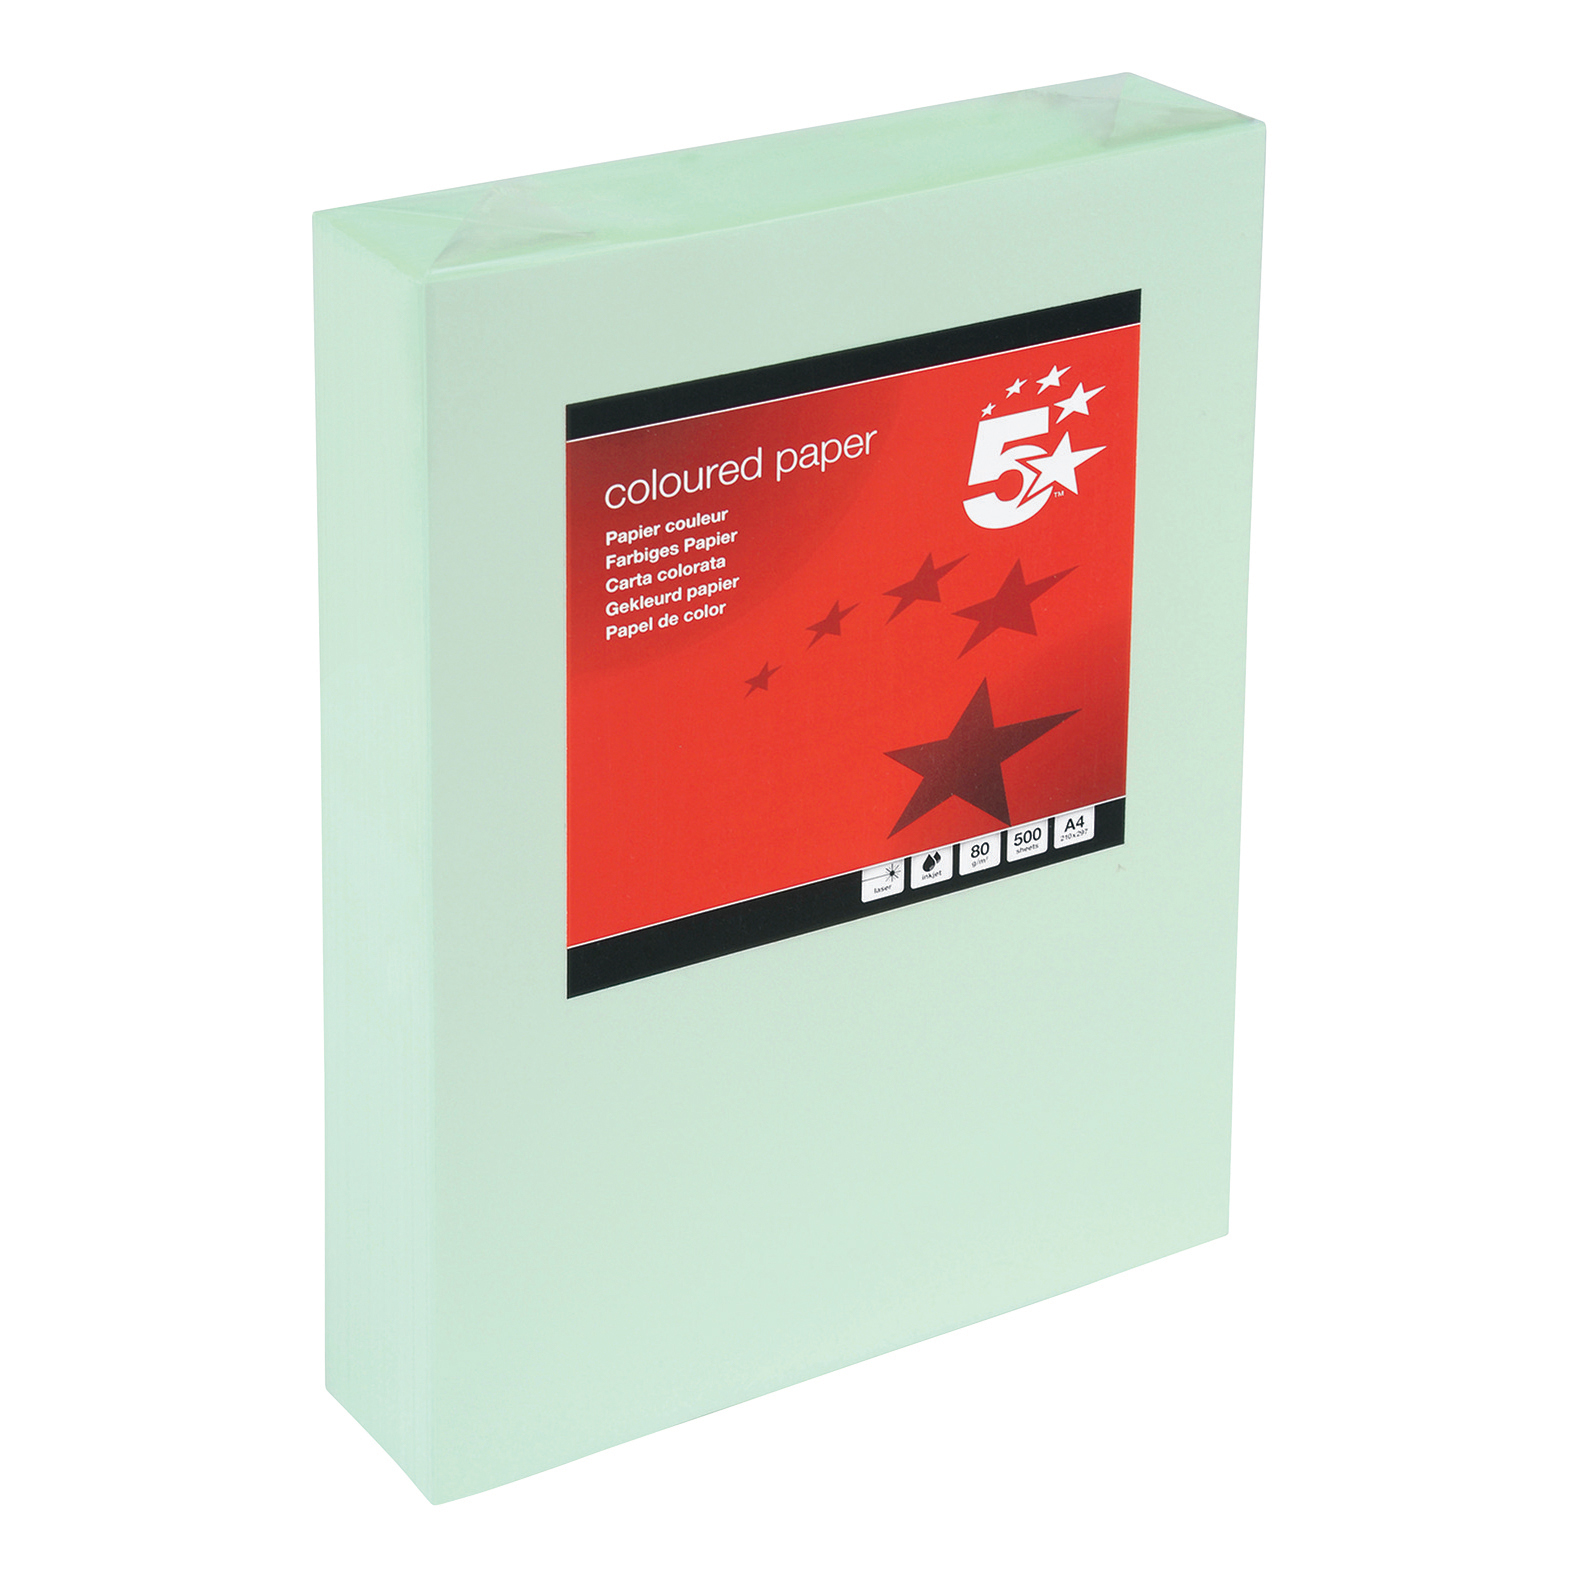 A4 5 Star Office Coloured Copier Paper Multifunctional Ream-Wrapped 80gsm A4 Light Green 500 Sheets